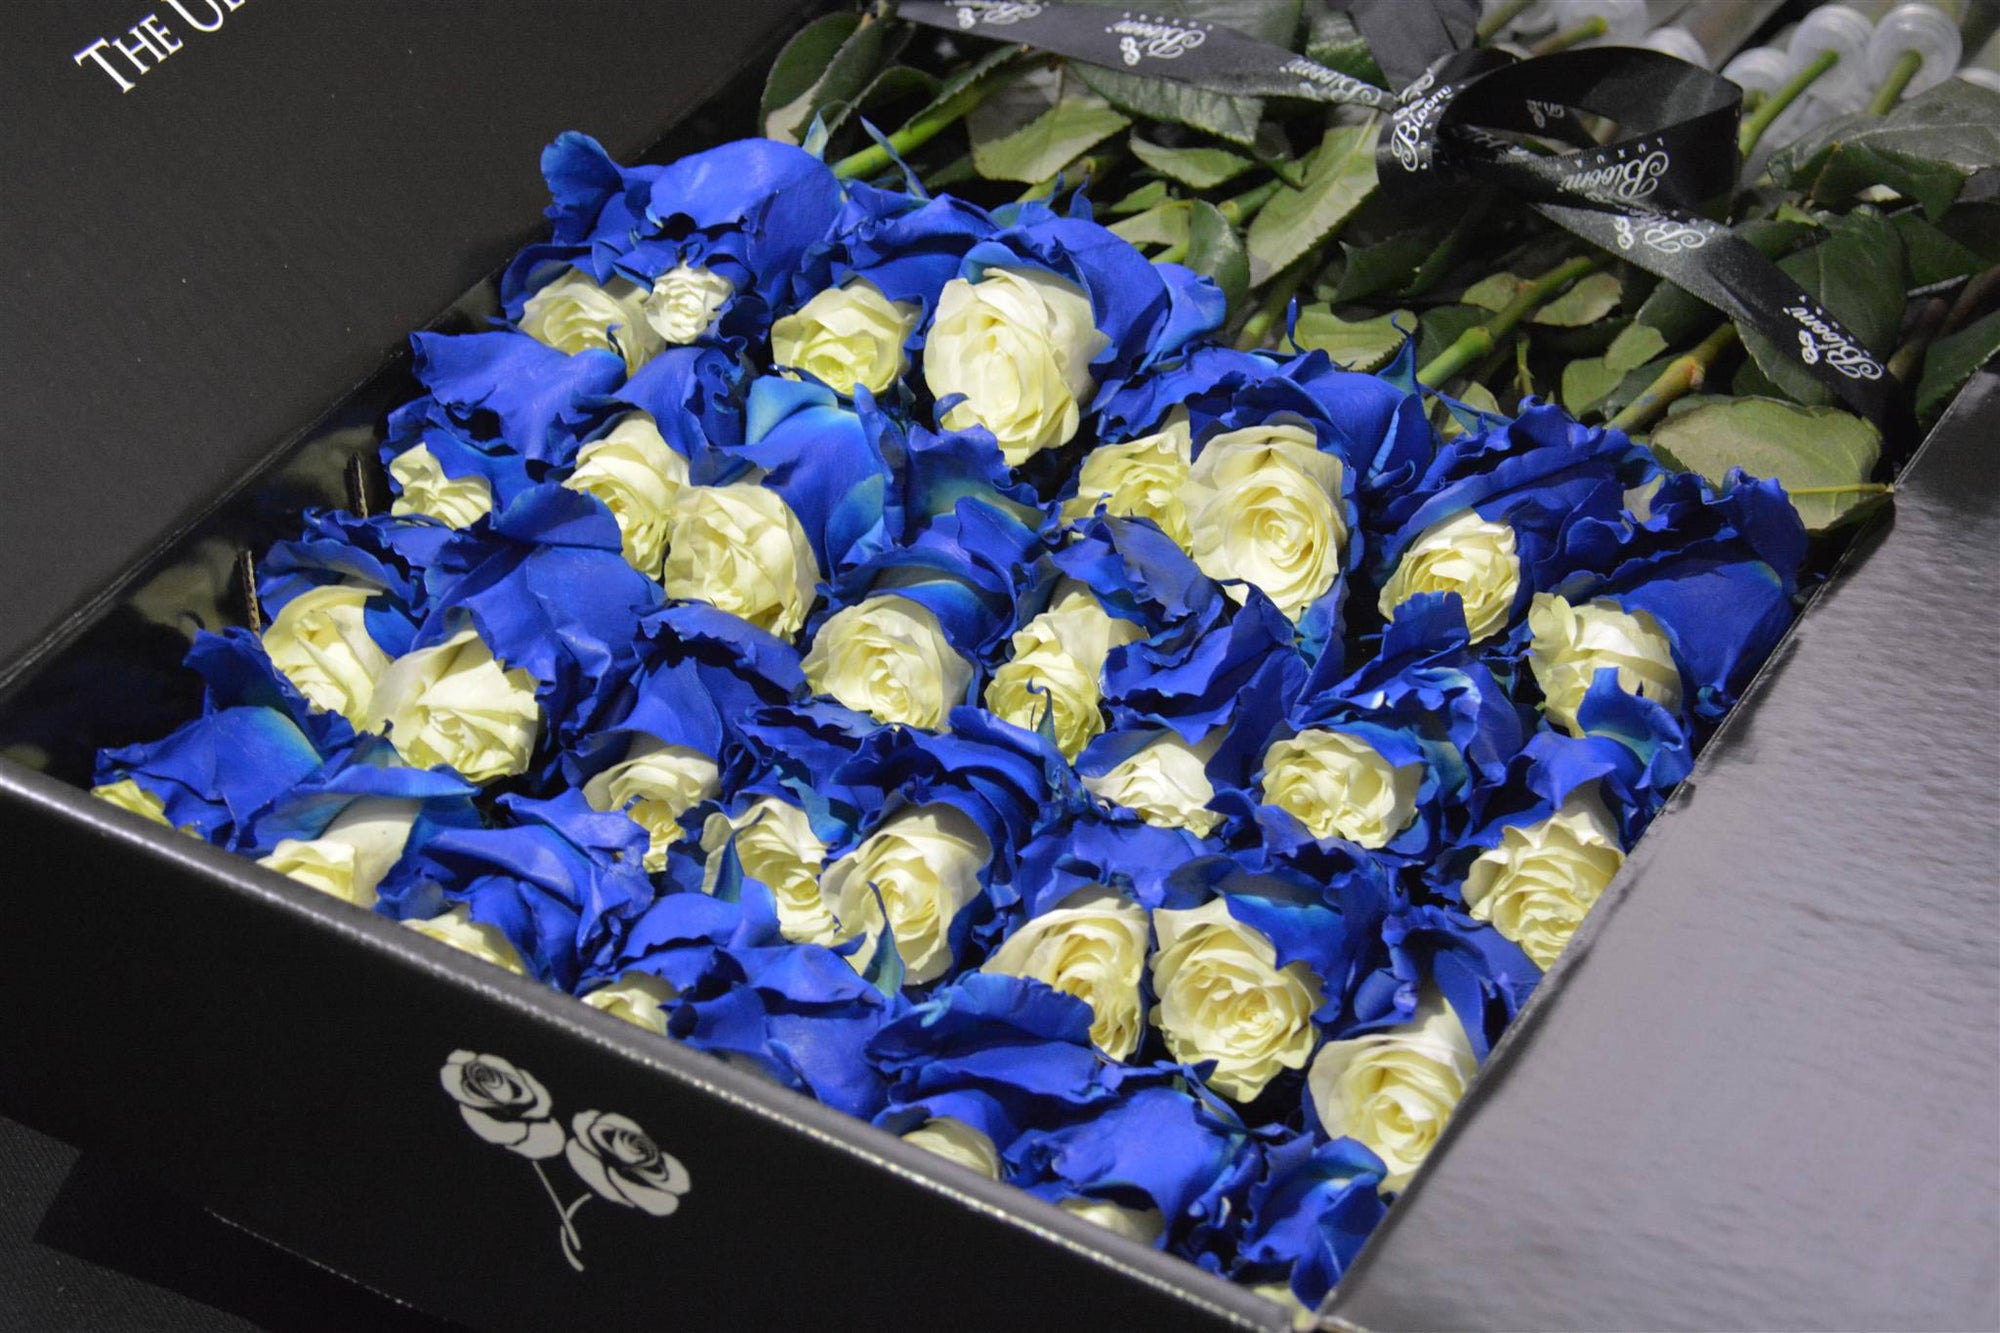 rose arrangements in a box